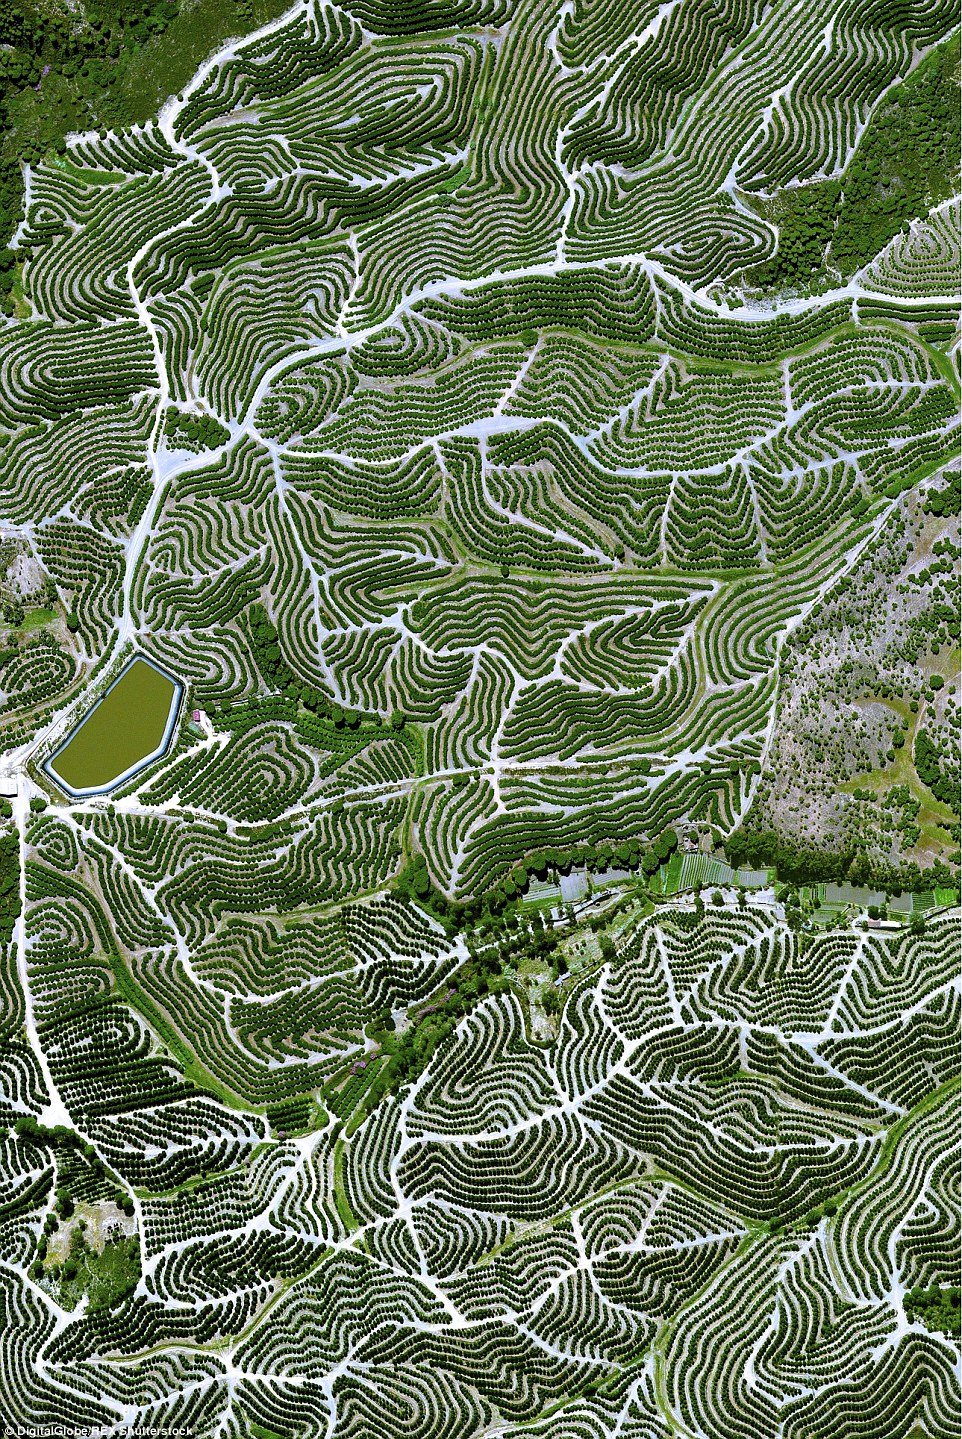 At the Huelva Orchard in Spain, fruit trees create a swirl-like pattern on the hills in the ideal temperate climate